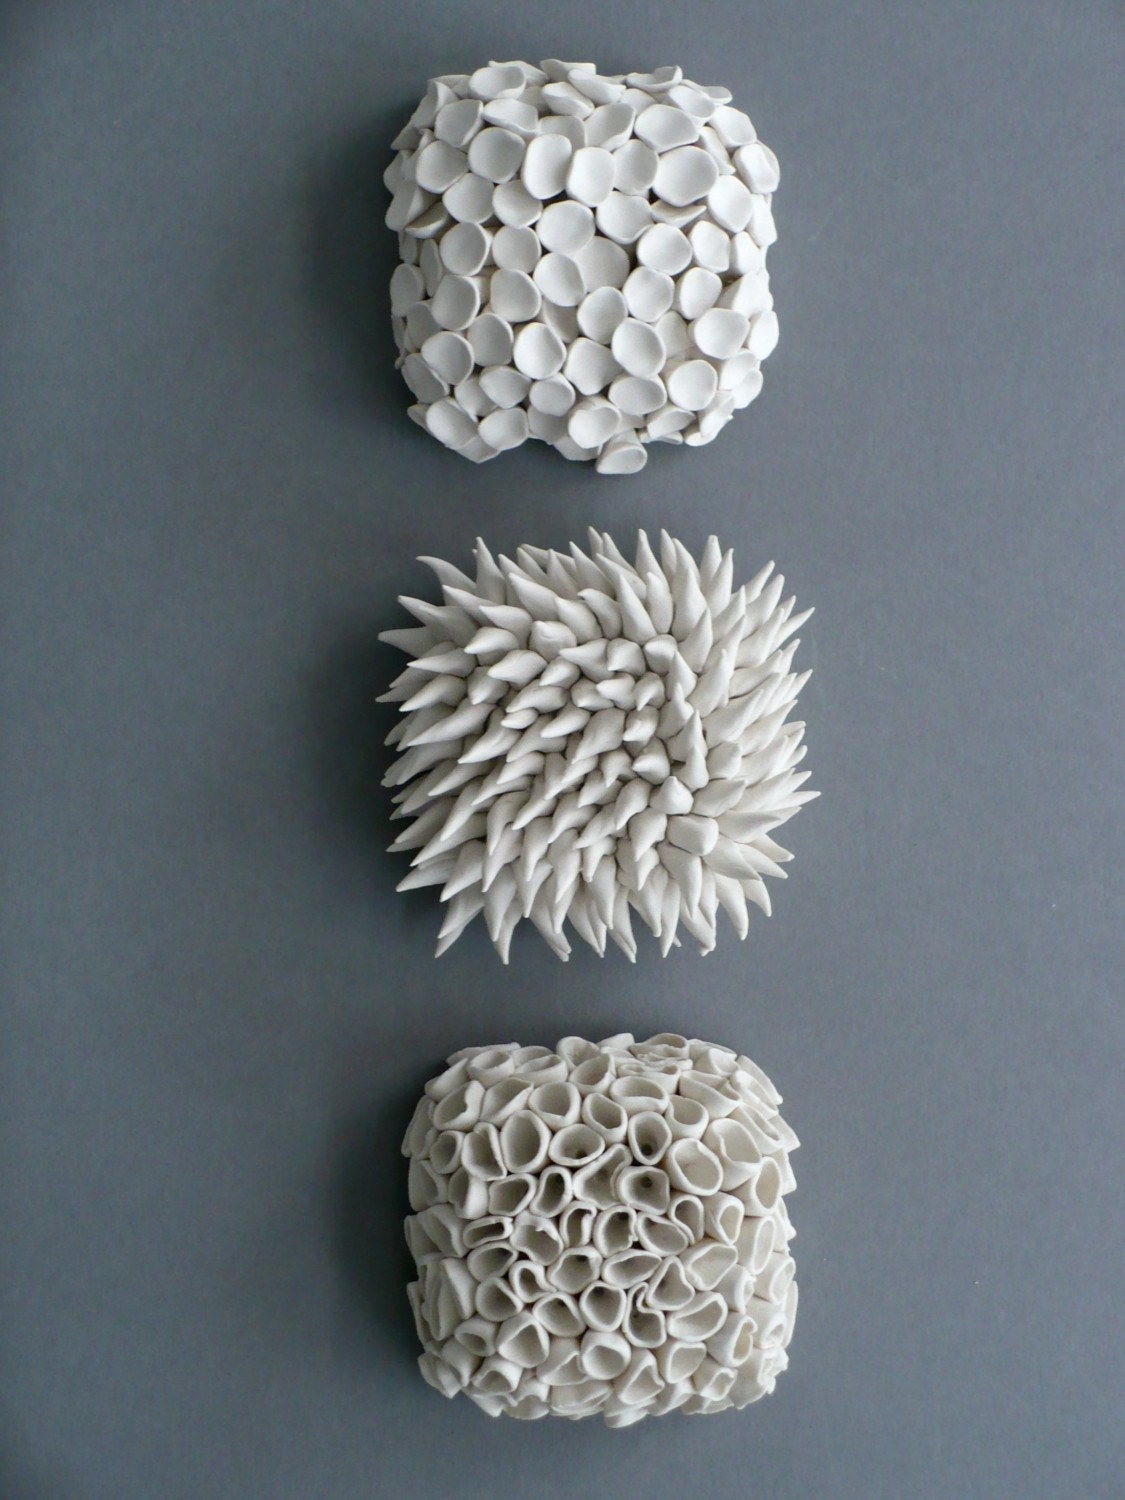 cravin organic sculptures from element clay studio the